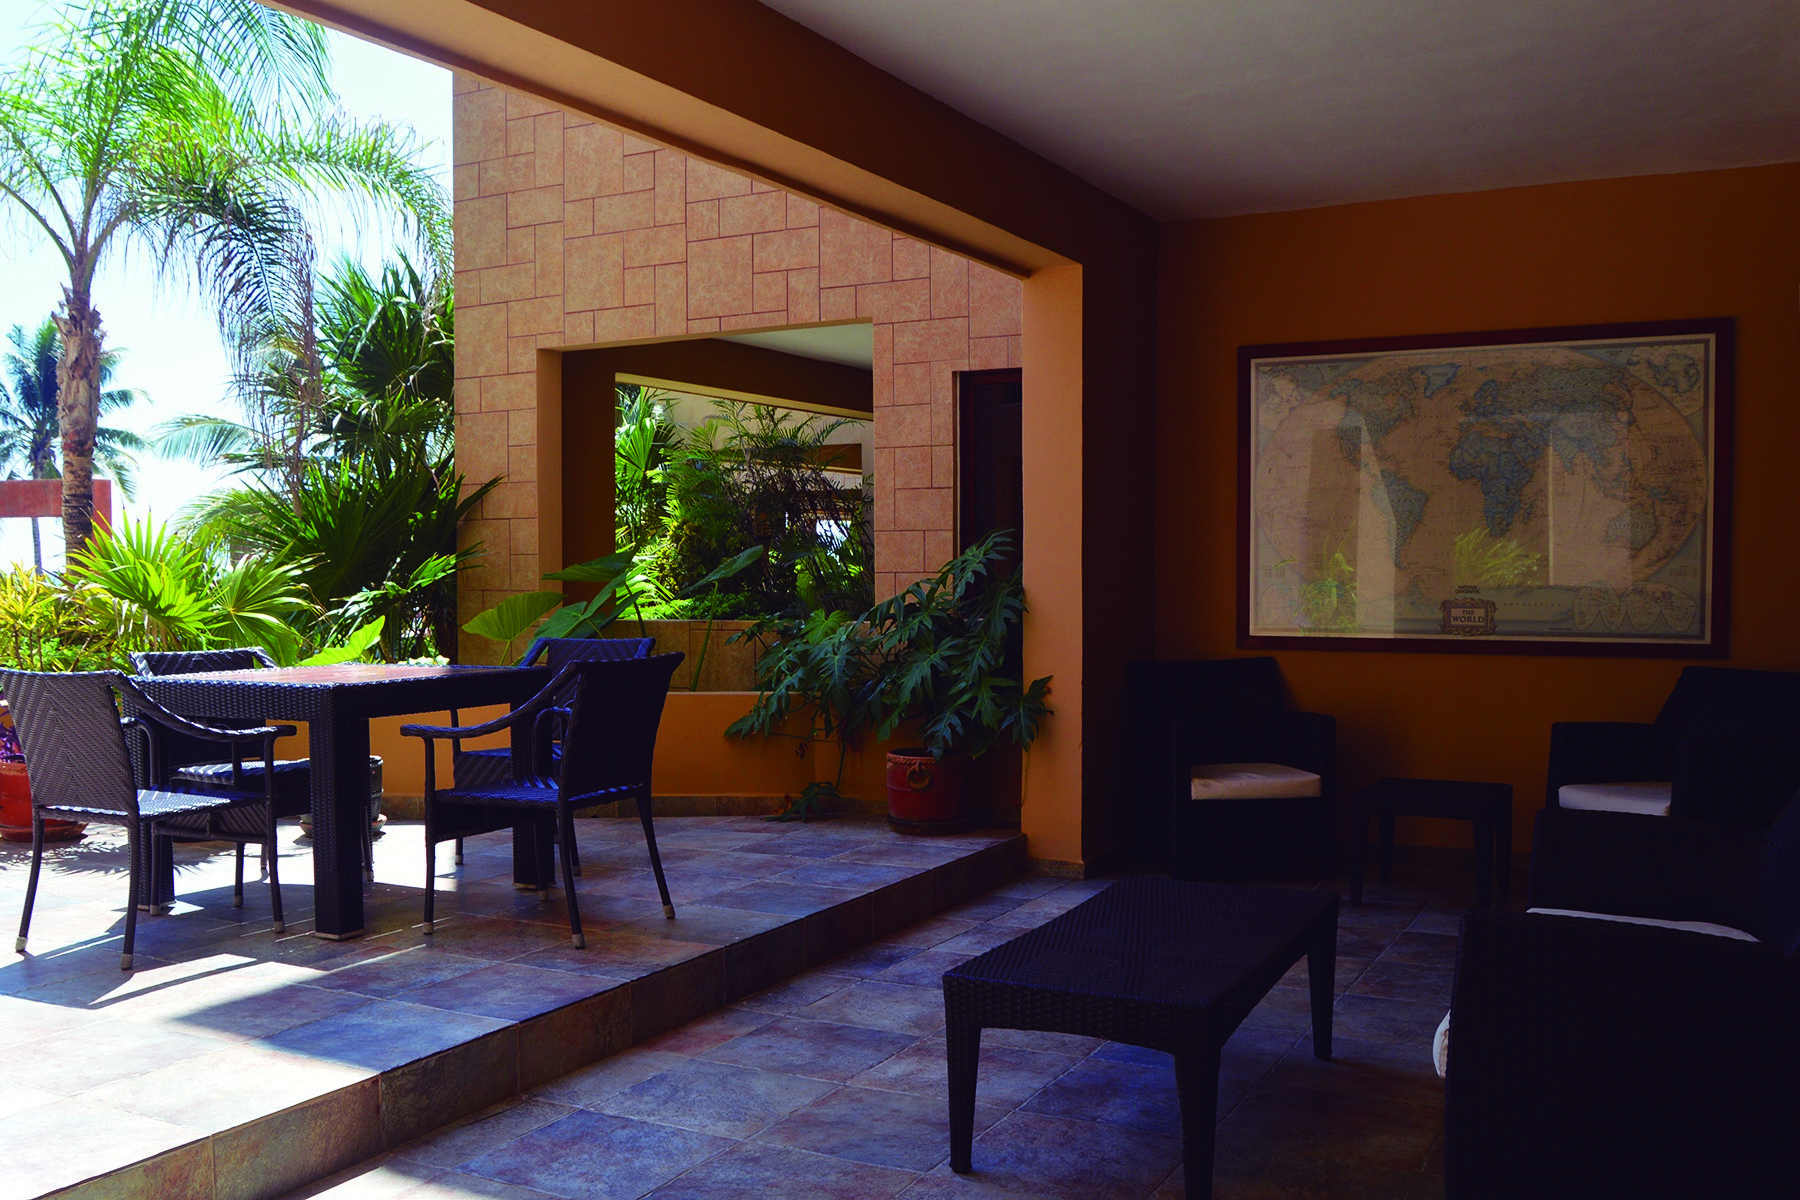 Additional photo for property listing at BEACHFRONT HOME IN A PRIVILEGED LOCATION Beachfront home in a privileged location North 8th Street & 10th Playa Del Carmen, Quintana Roo 77710 Mexico